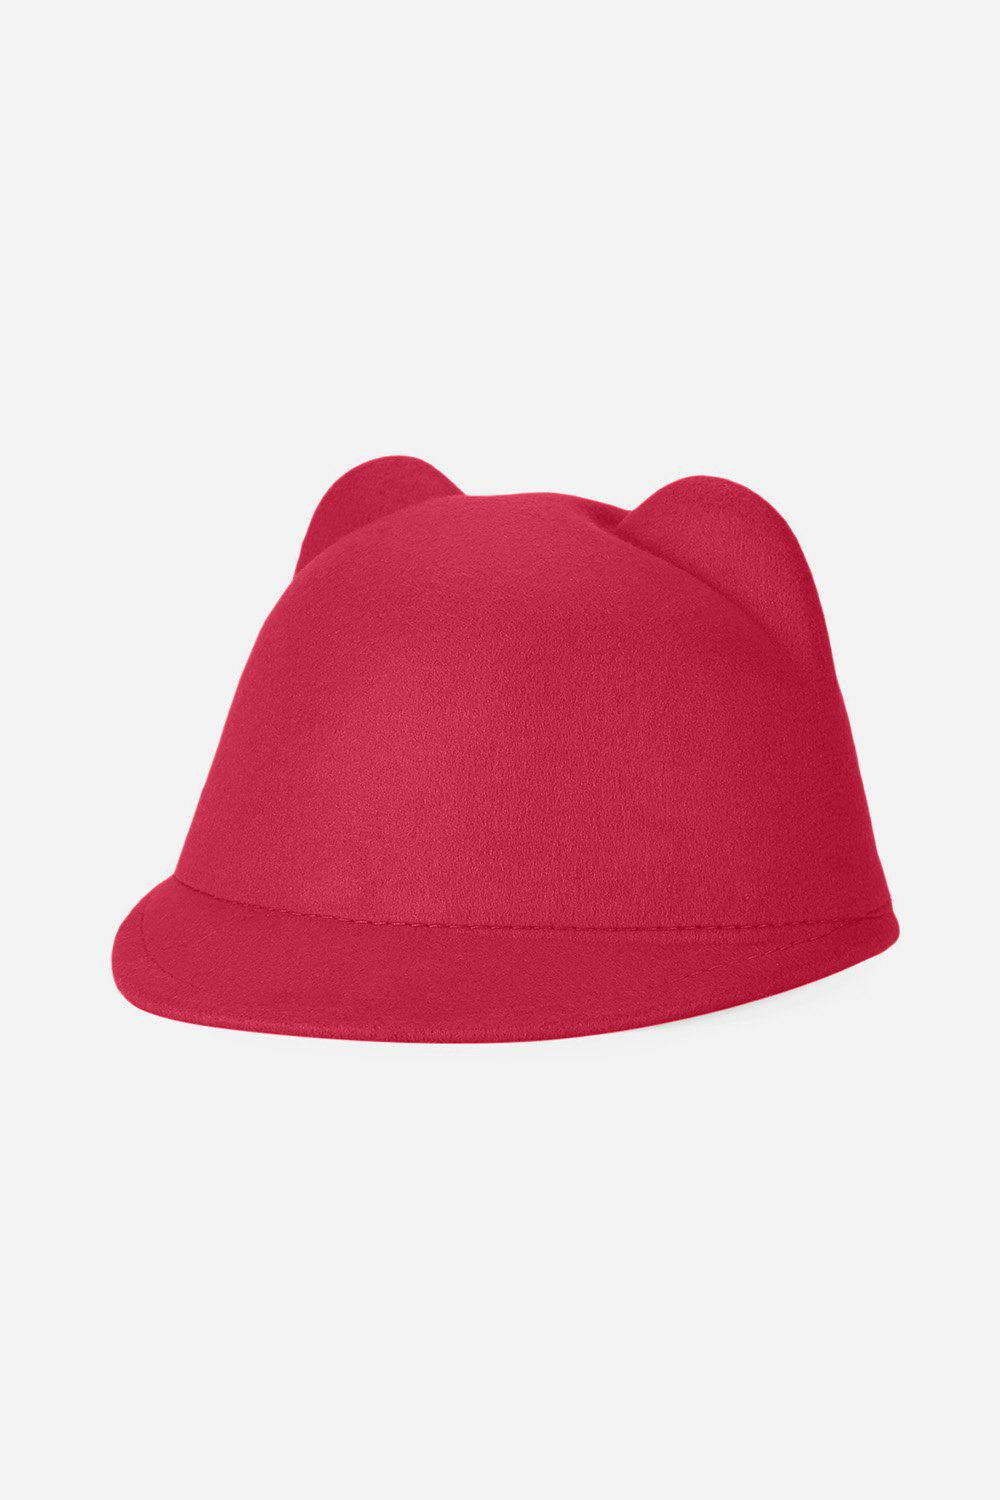 Chic Fashionable Cat Ear Design Solid Color Top Hat for Unisex